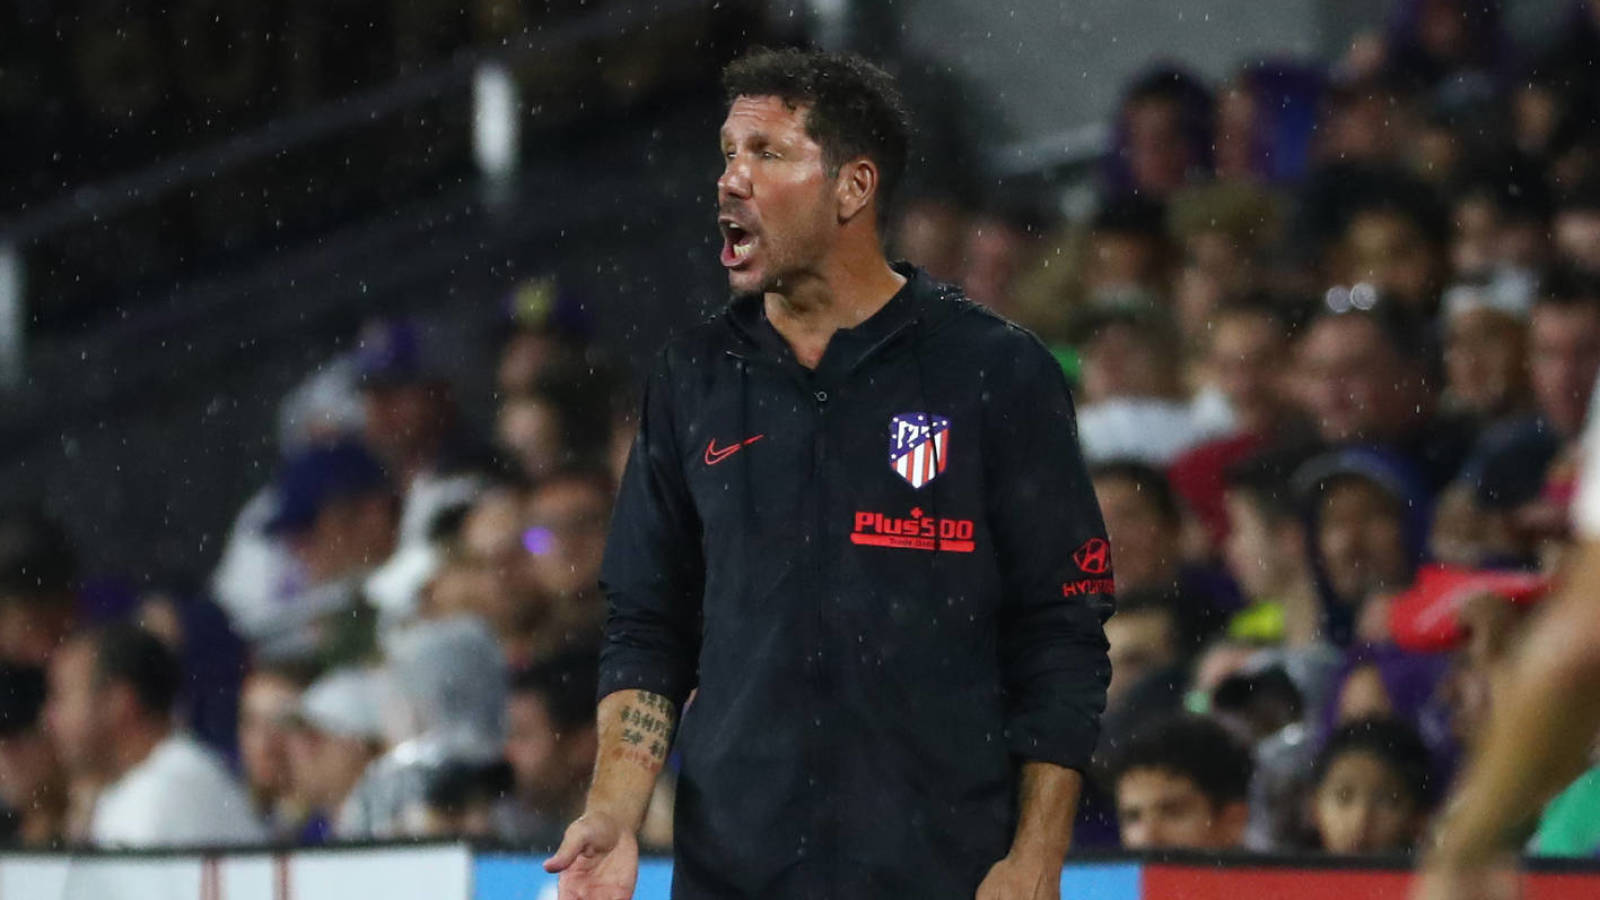 Will Diego Simeone ever leave Atletico Madrid?